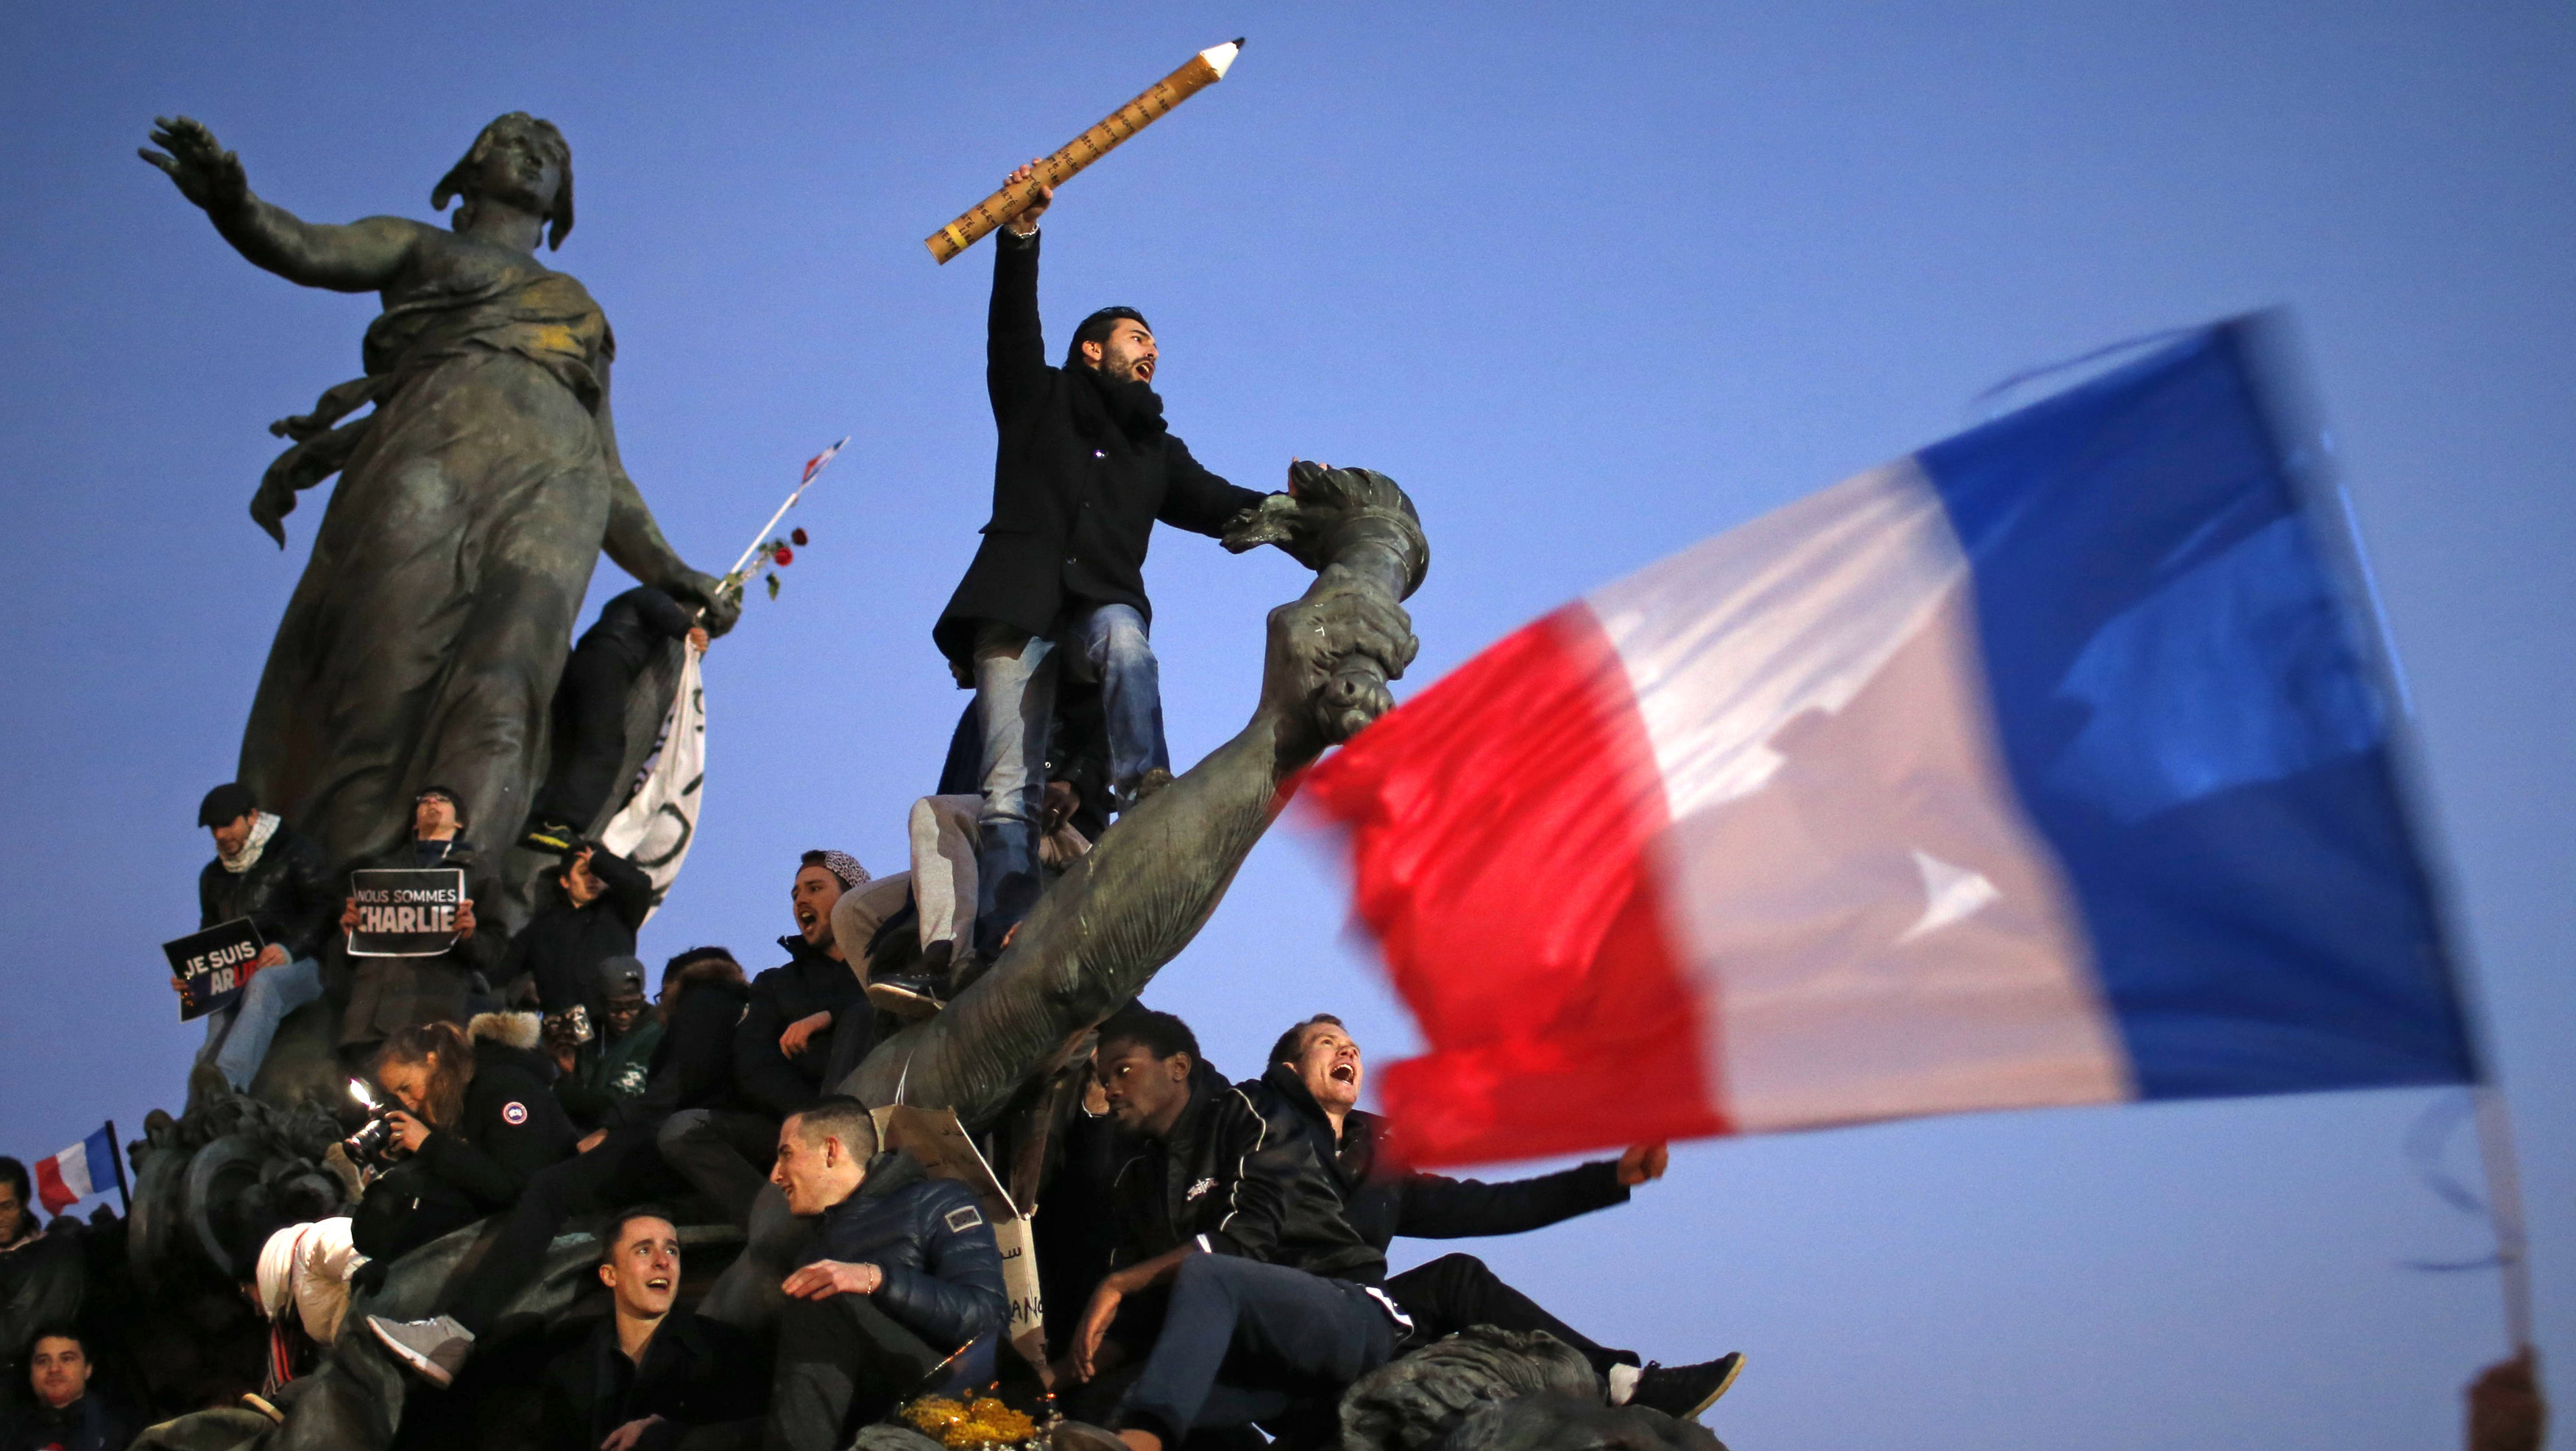 A man holds a giant pencil as he takes part in a Hundreds of thousands of French citizens solidarity march (Marche Republicaine) in the streets of Paris January 11, 2015. French citizens will be joined by dozens of foreign leaders, among them Arab and Muslim representatives, in a march on Sunday in an unprecedented tribute to this week's victims following the shootings by gunmen at the offices of the satirical weekly newspaper Charlie Hebdo, the killing of a police woman in Montrouge, and the hostage taking at a kosher supermarket at the Porte de Vincennes.